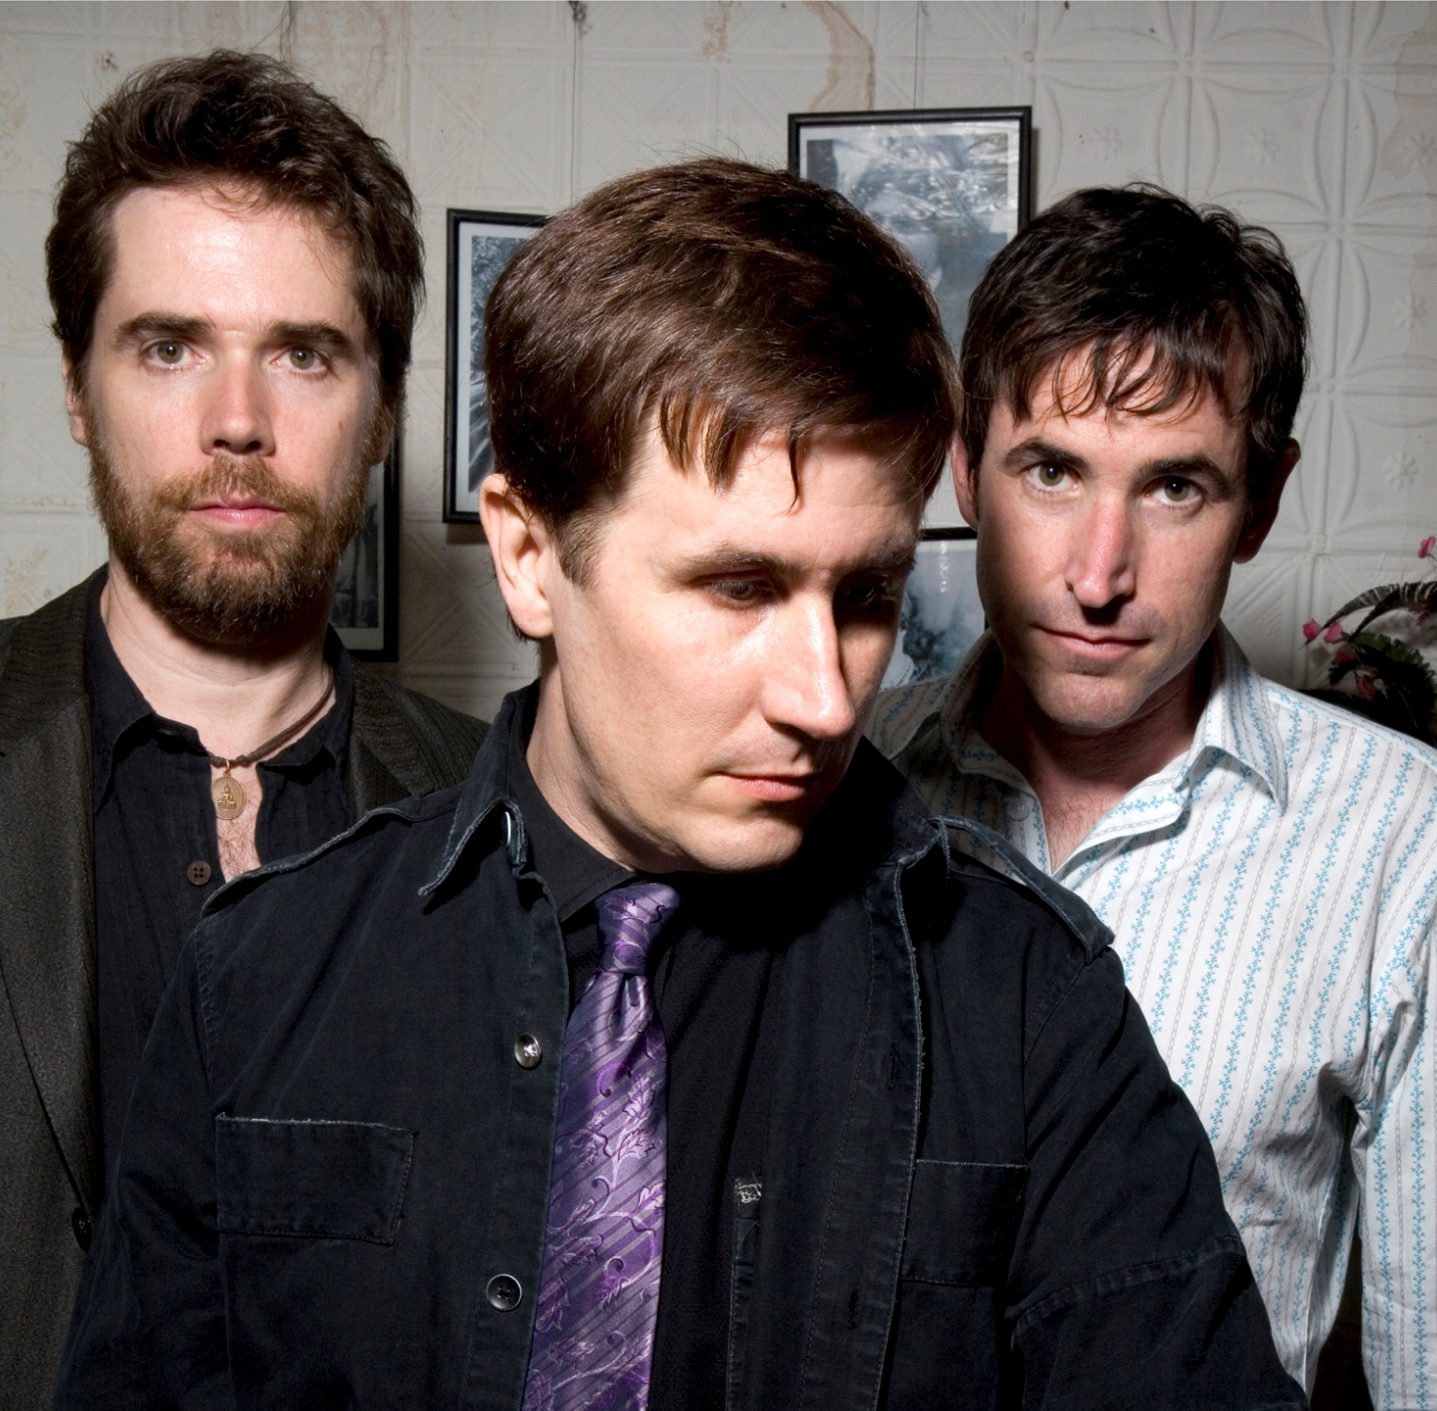 Jon Wurster, John Darnielle and Peter Hughes of The Mountain Goats. (Photo by Chrissy Piper)